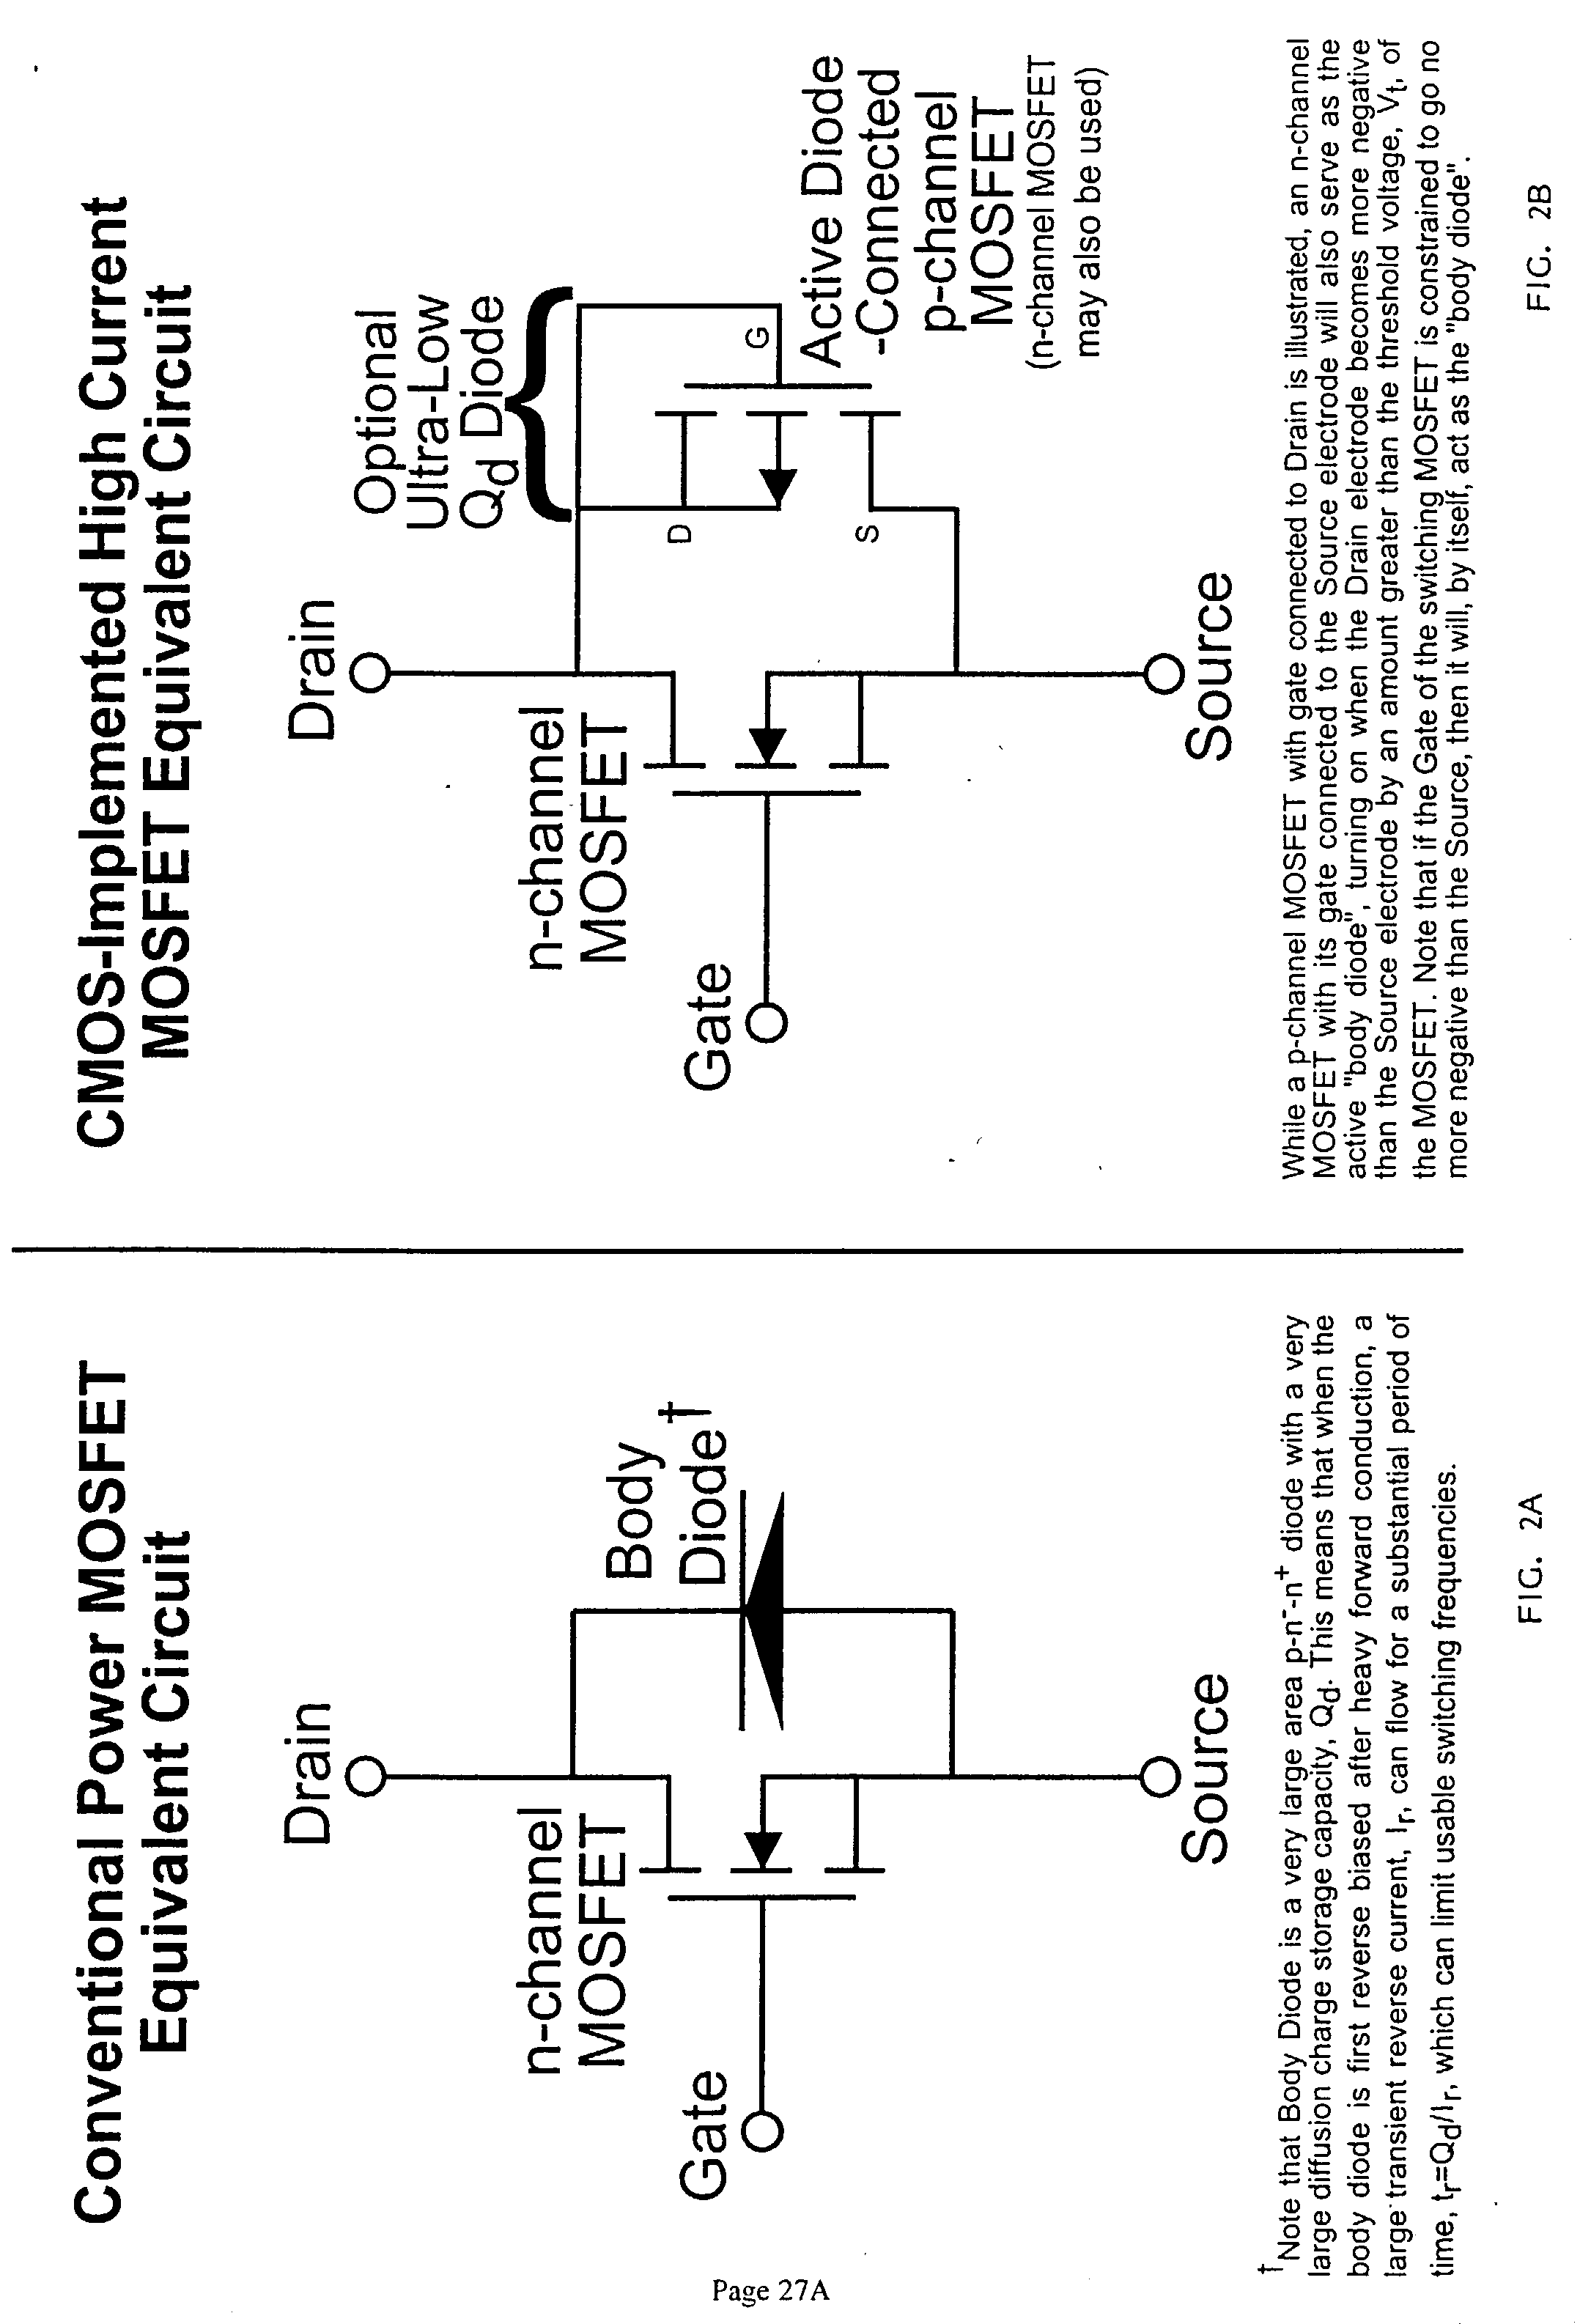 Us20020195662a1 Power Semiconductor Switching Devices P Channel Mosfet Circuit Diagram Figure 20021226 P00002